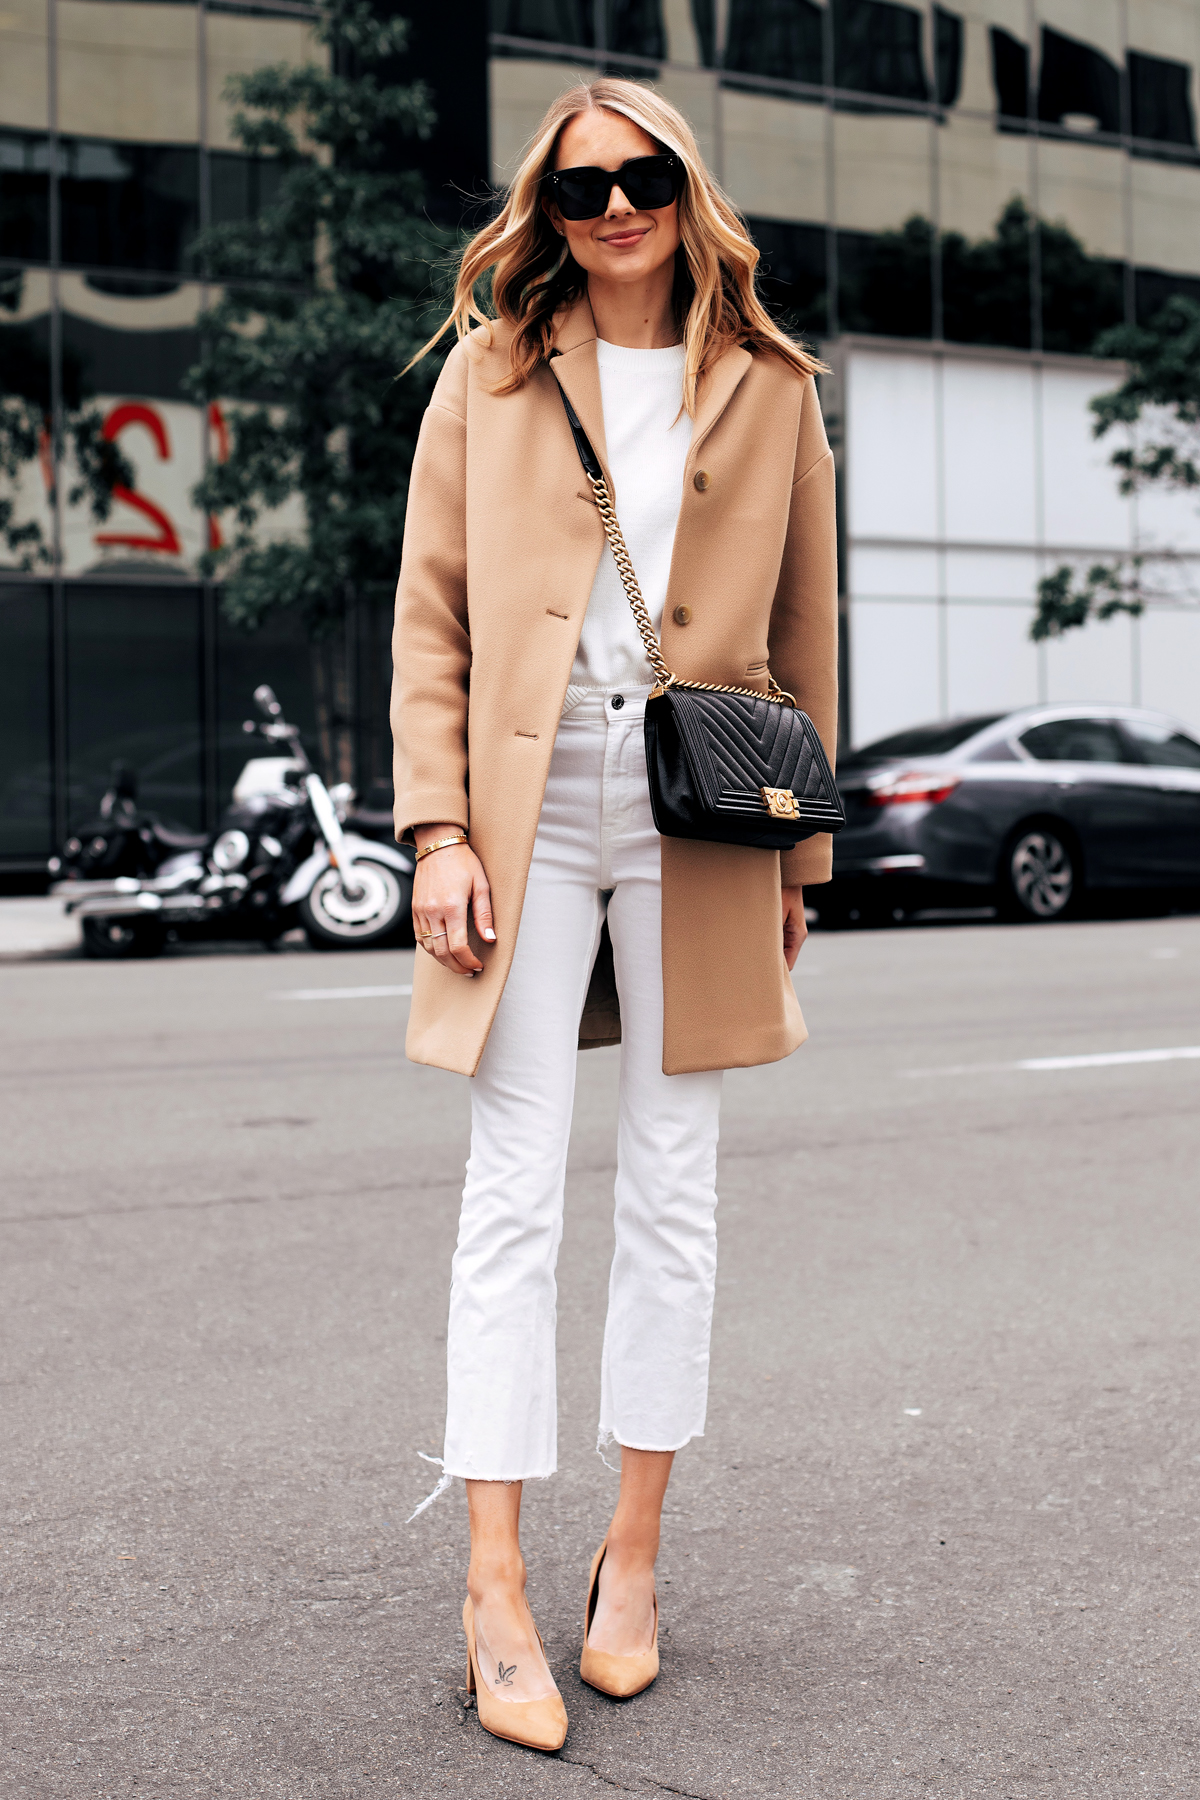 Fashion Jackson Capsule Wardrobe Wearing Everlane Camel Coat Everlane White Sweater Everlane White Crop Jeans Tan Pumps Black Chanel Boy Bag